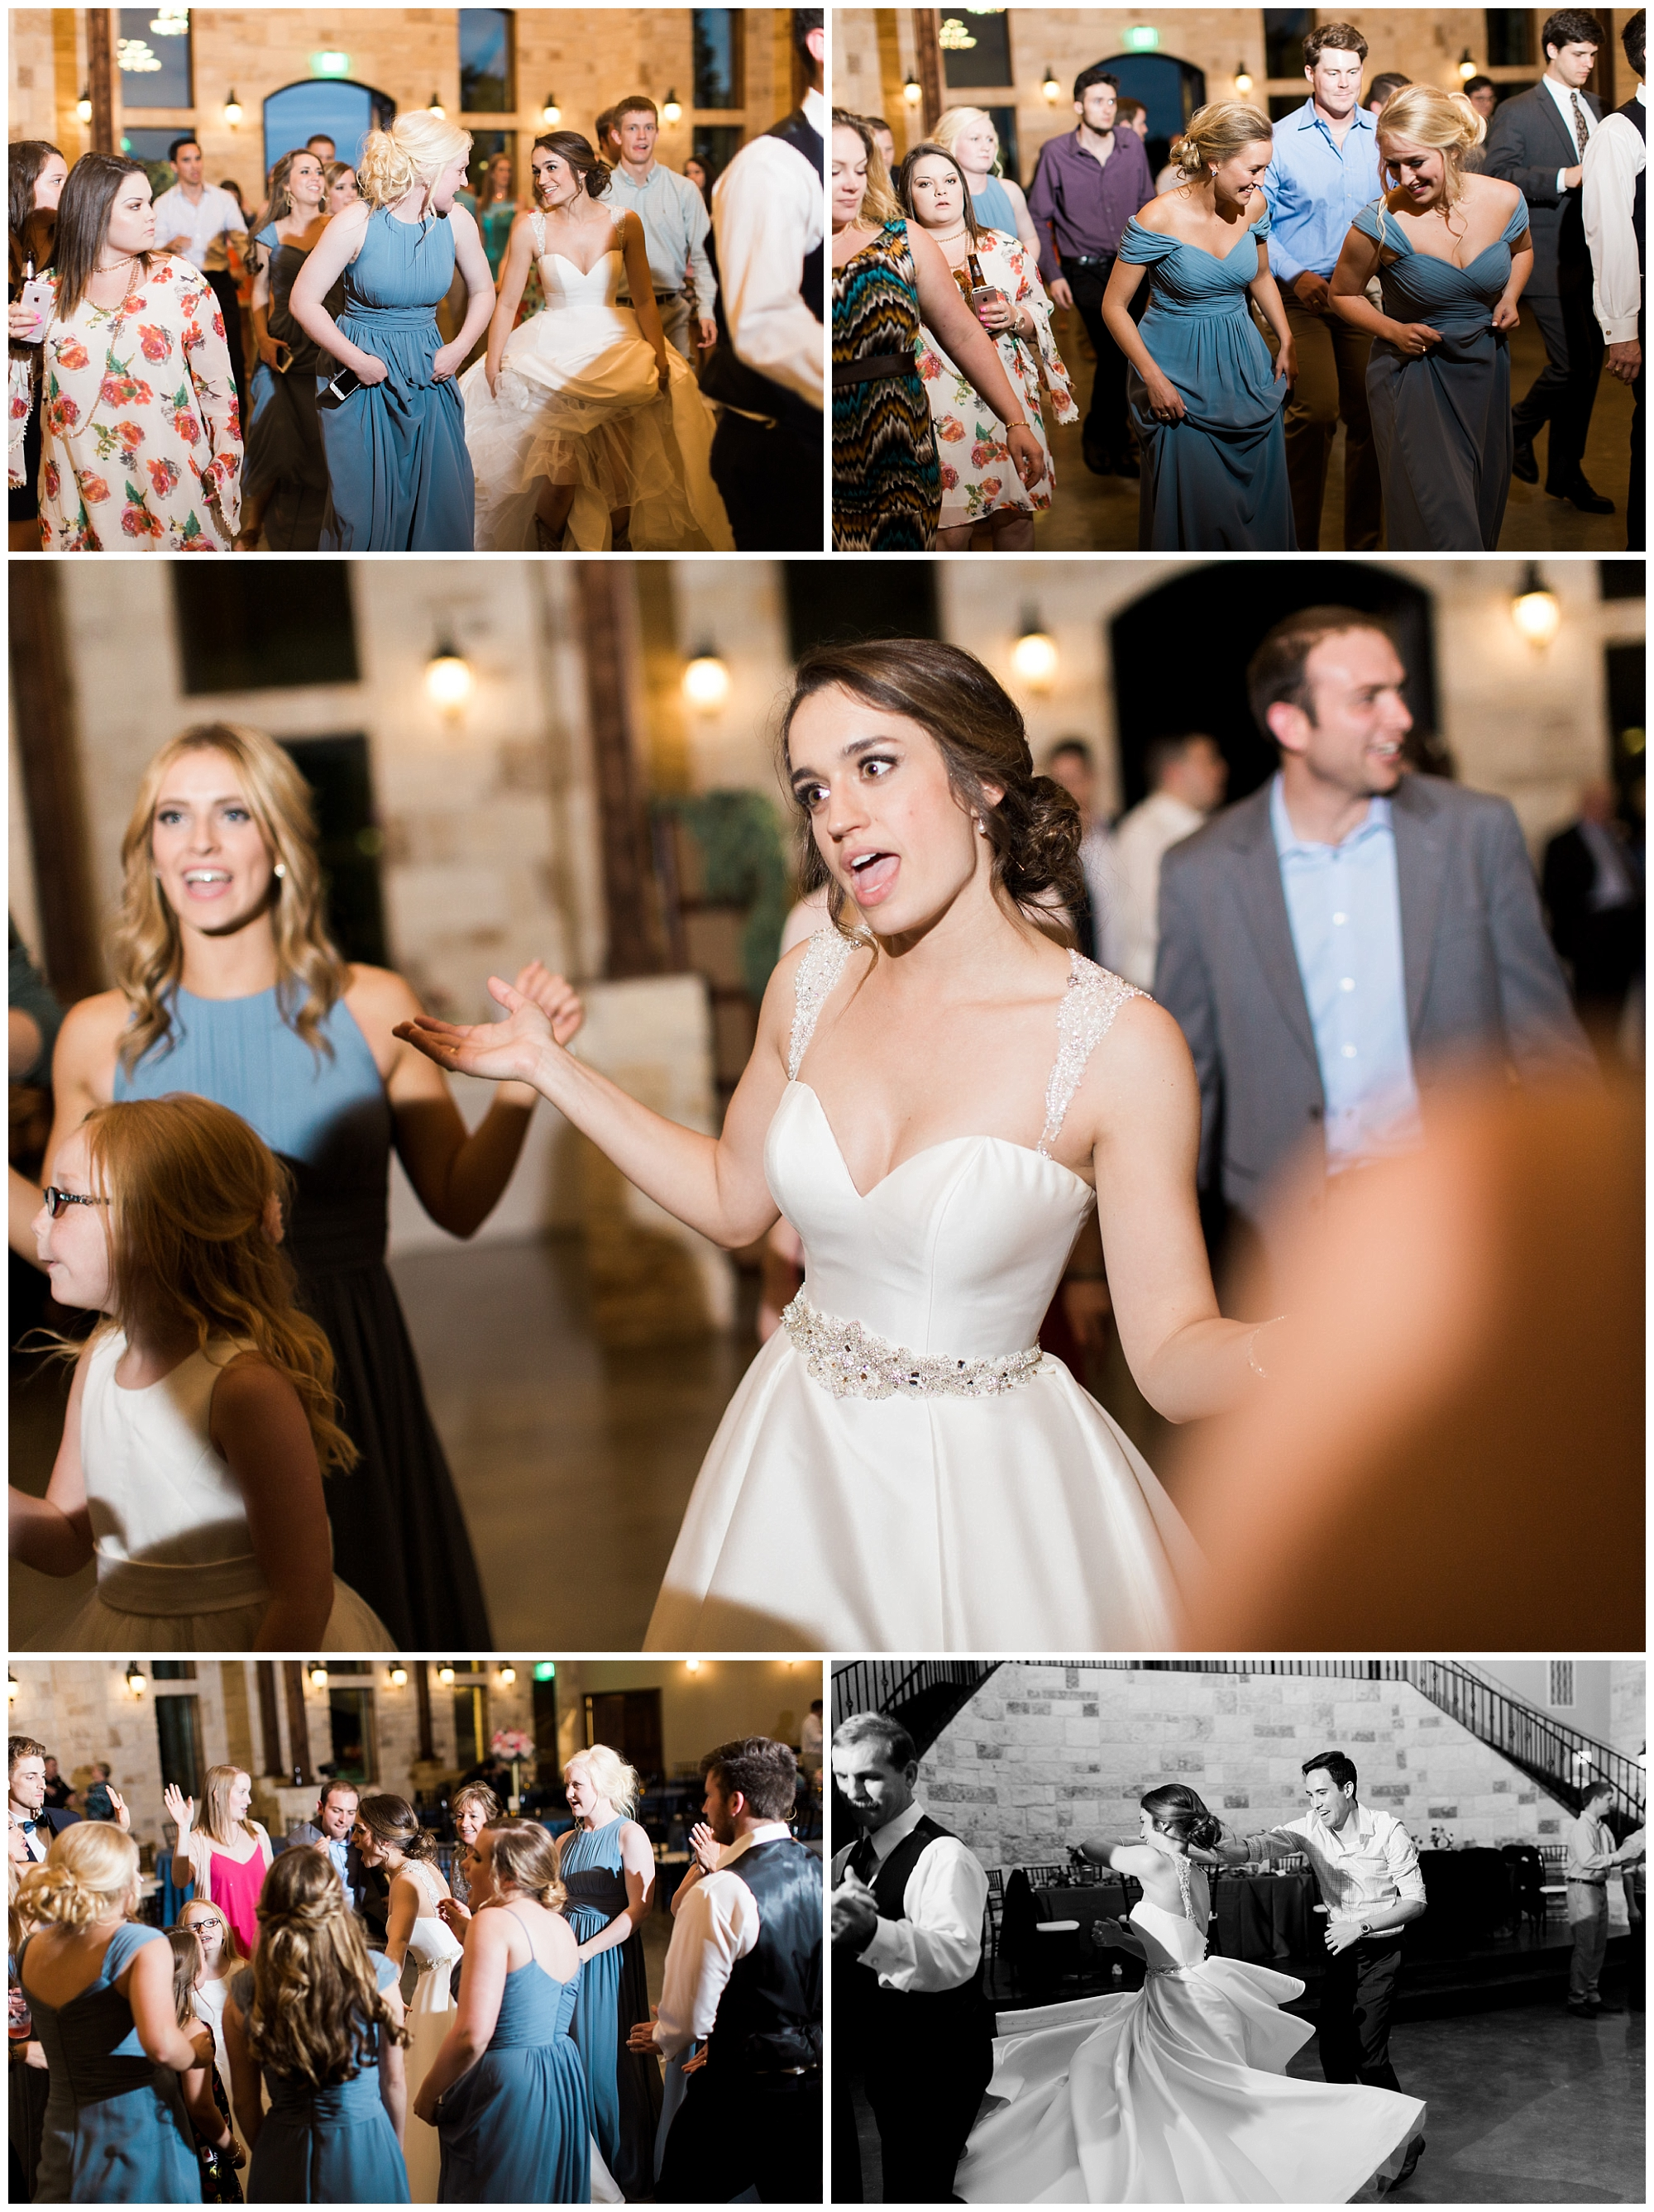 Brownstone_Reserve_Wedding_Kristina_Ross_Photography_0047.jpg